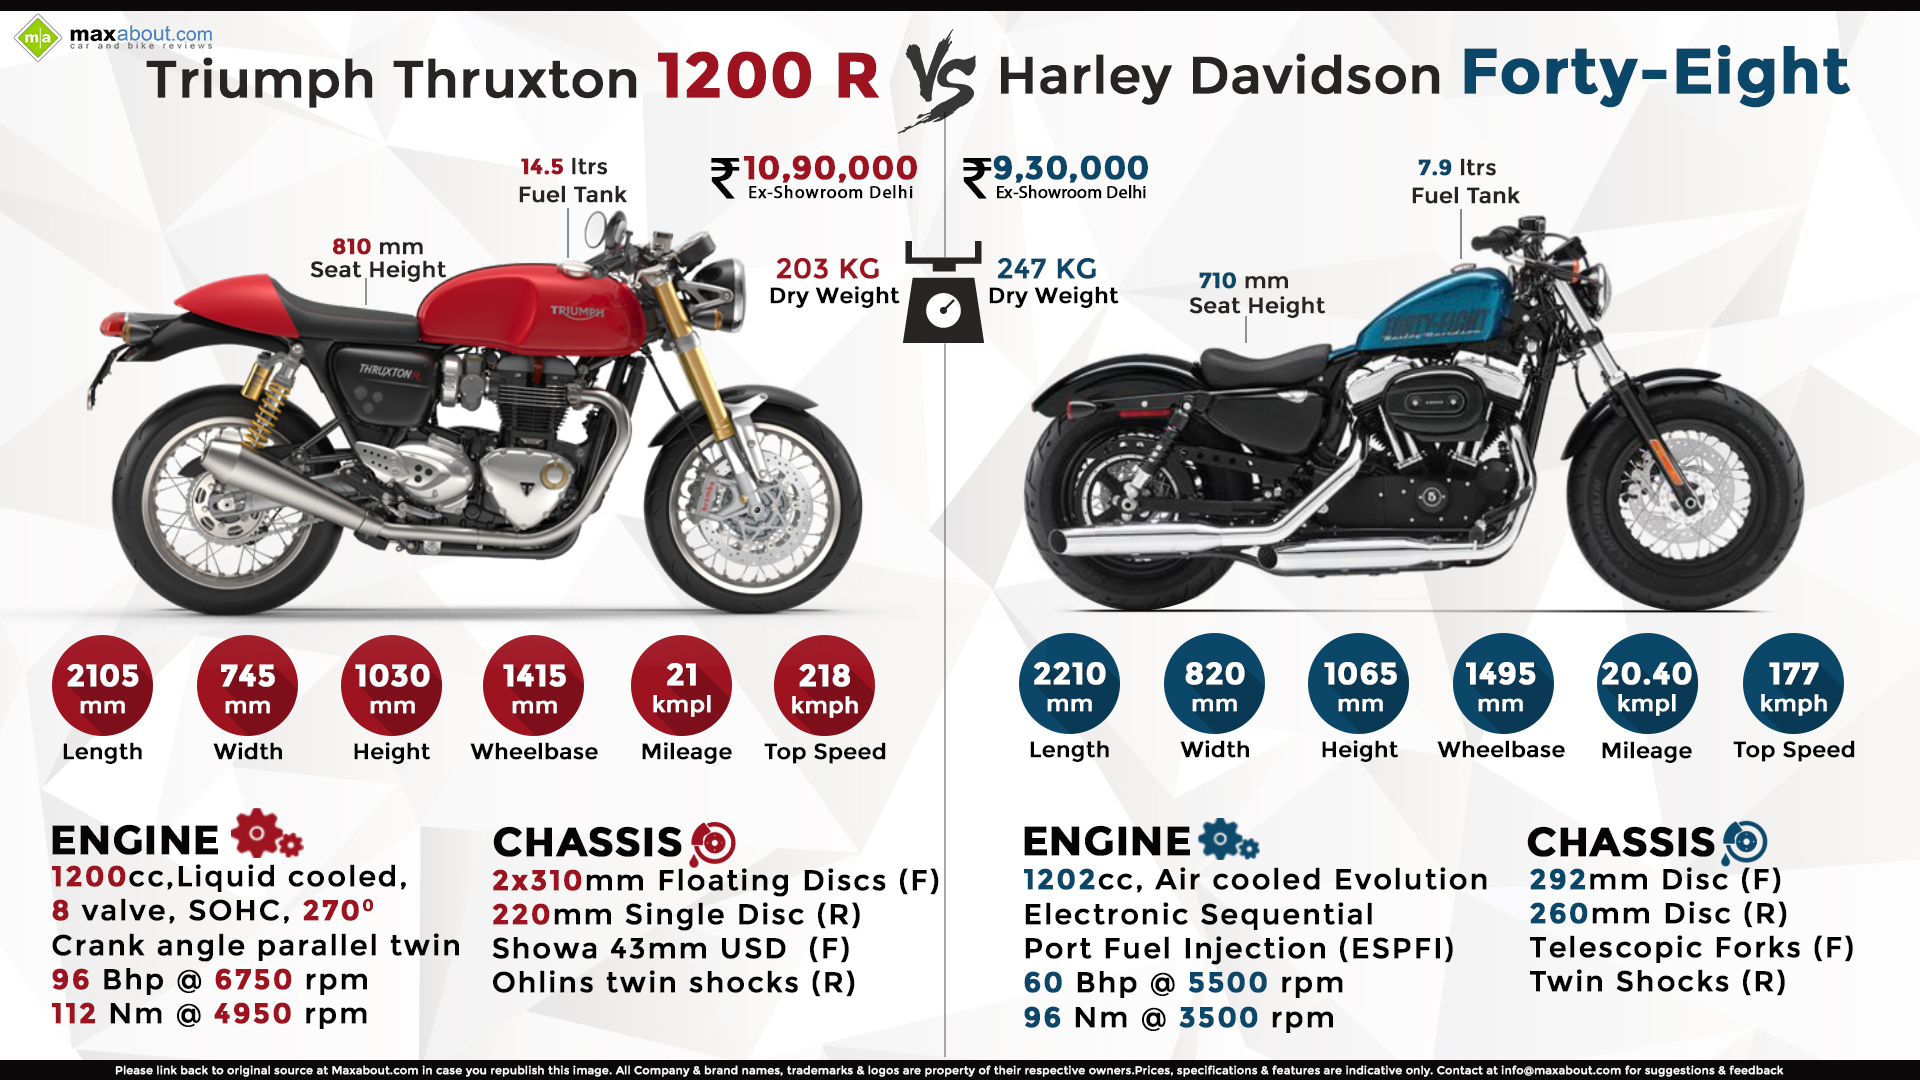 Triumph Thruxton R Vs Harley Davidson Forty Eight